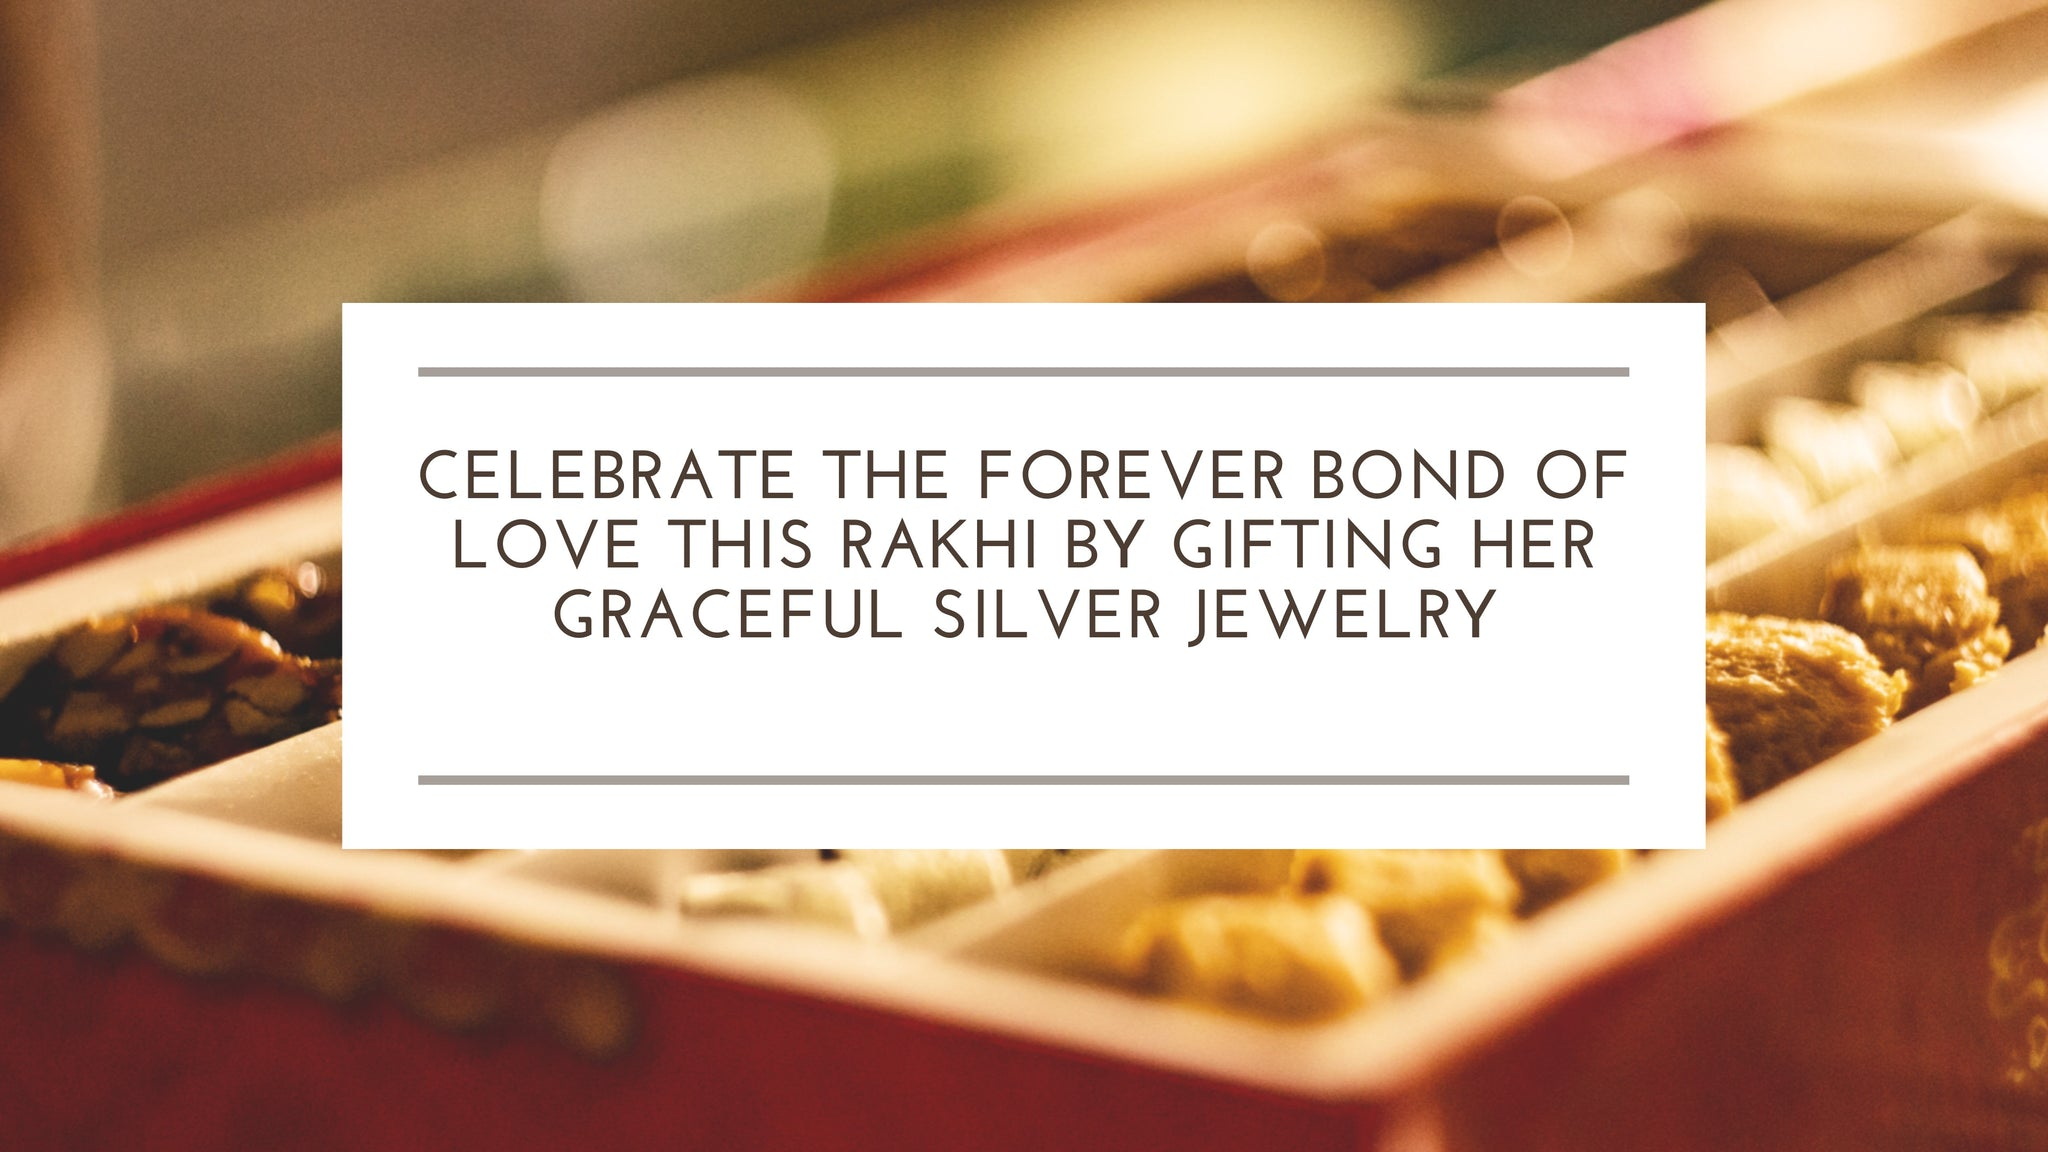 Celebrate the Forever Bond of Love This Rakhi by Gifting Her Graceful Silver Jewelry